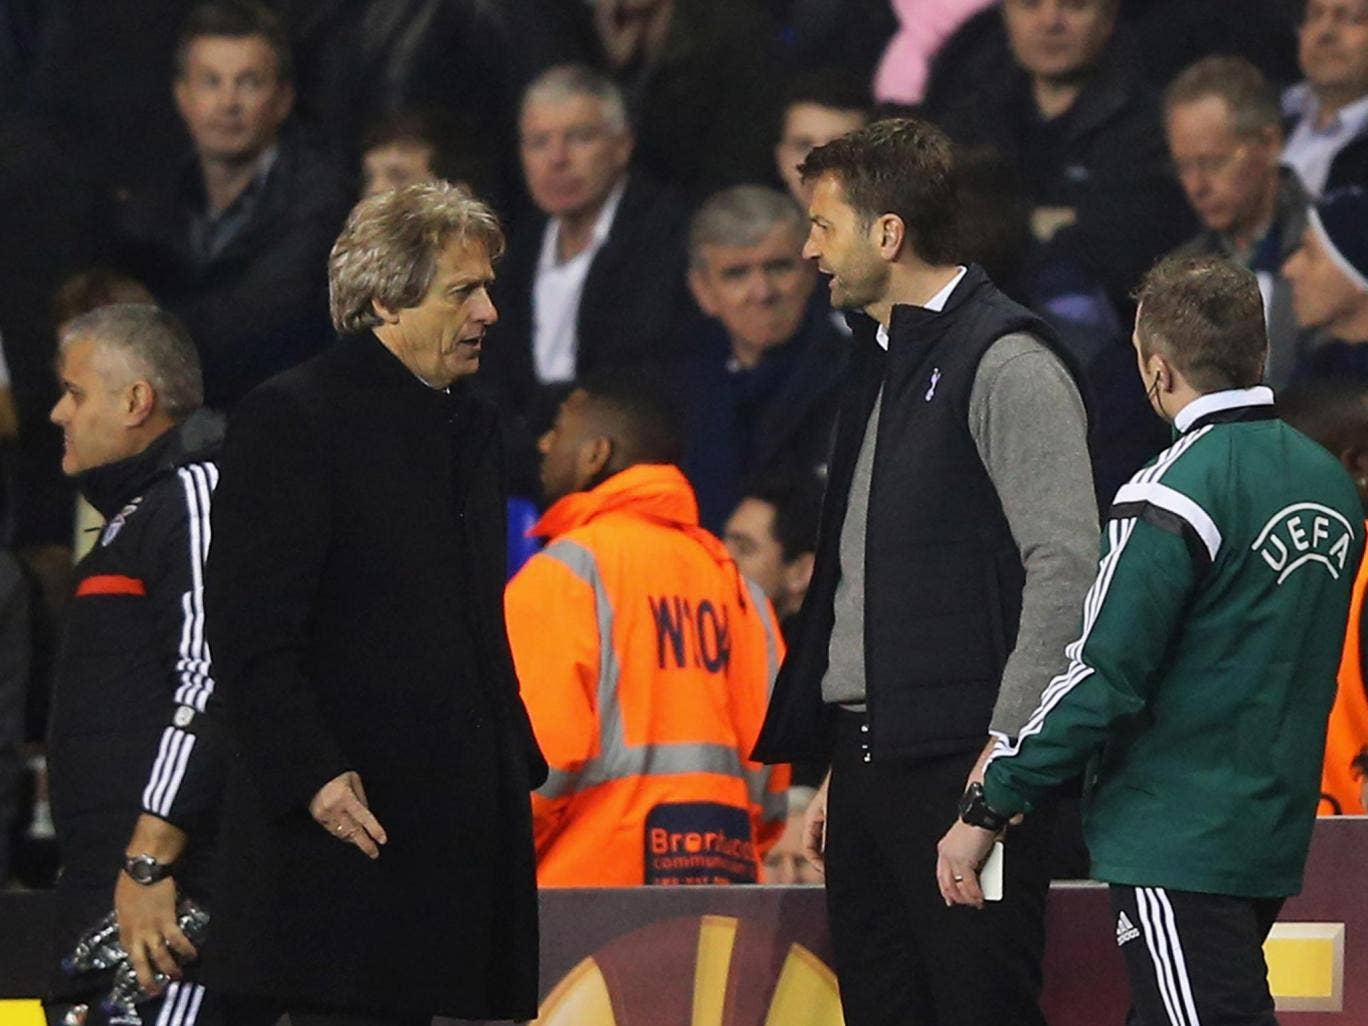 Tim Sherwood manager of Tottenham Hotspur argues with Jorge Jesus manager of Benfica during the match